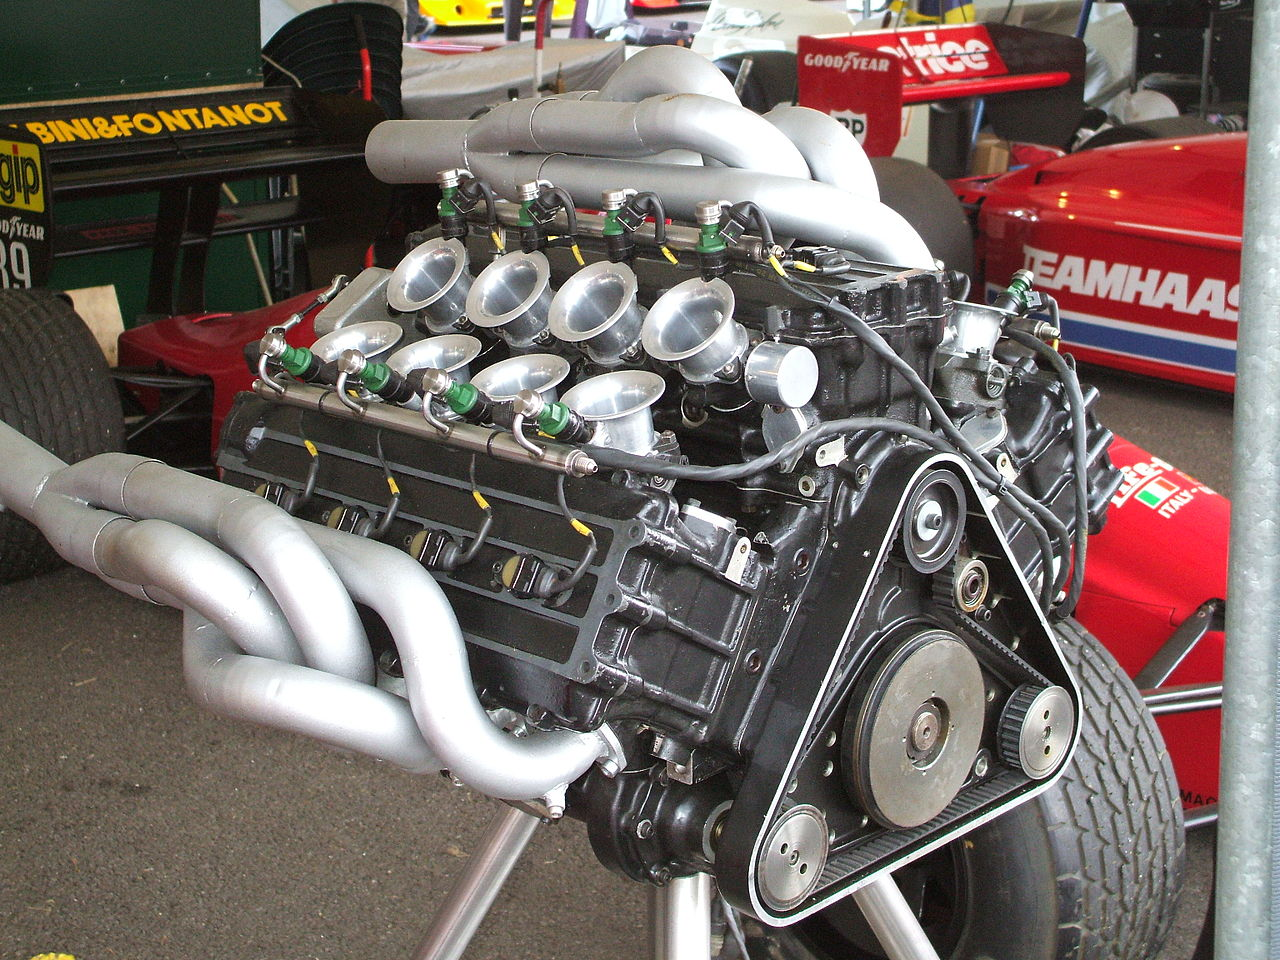 F1 V6 turbos are more powerful than V8s or V10s says ...